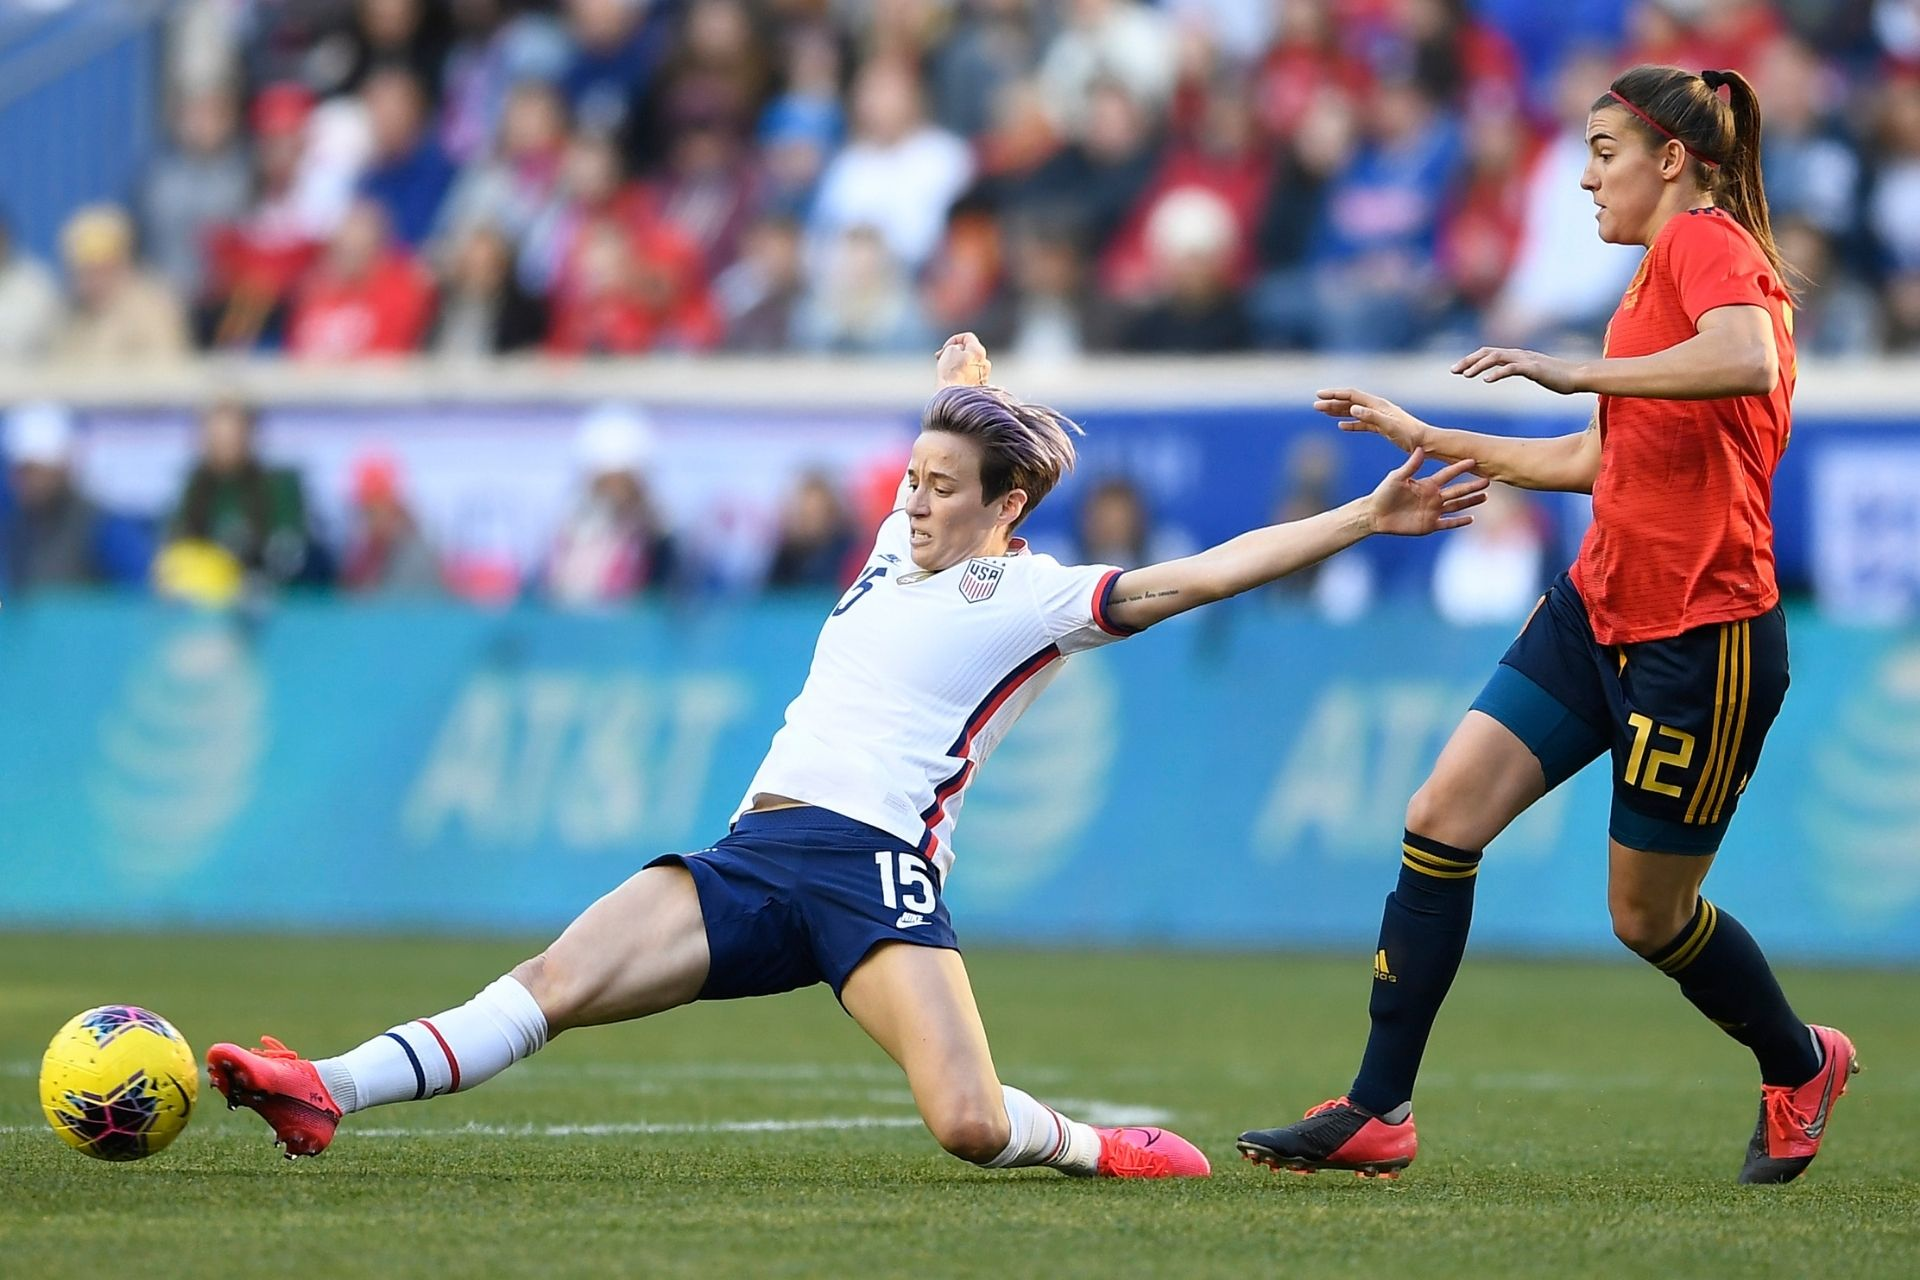 The U.S. women's soccer team just suffered this Olympic ...